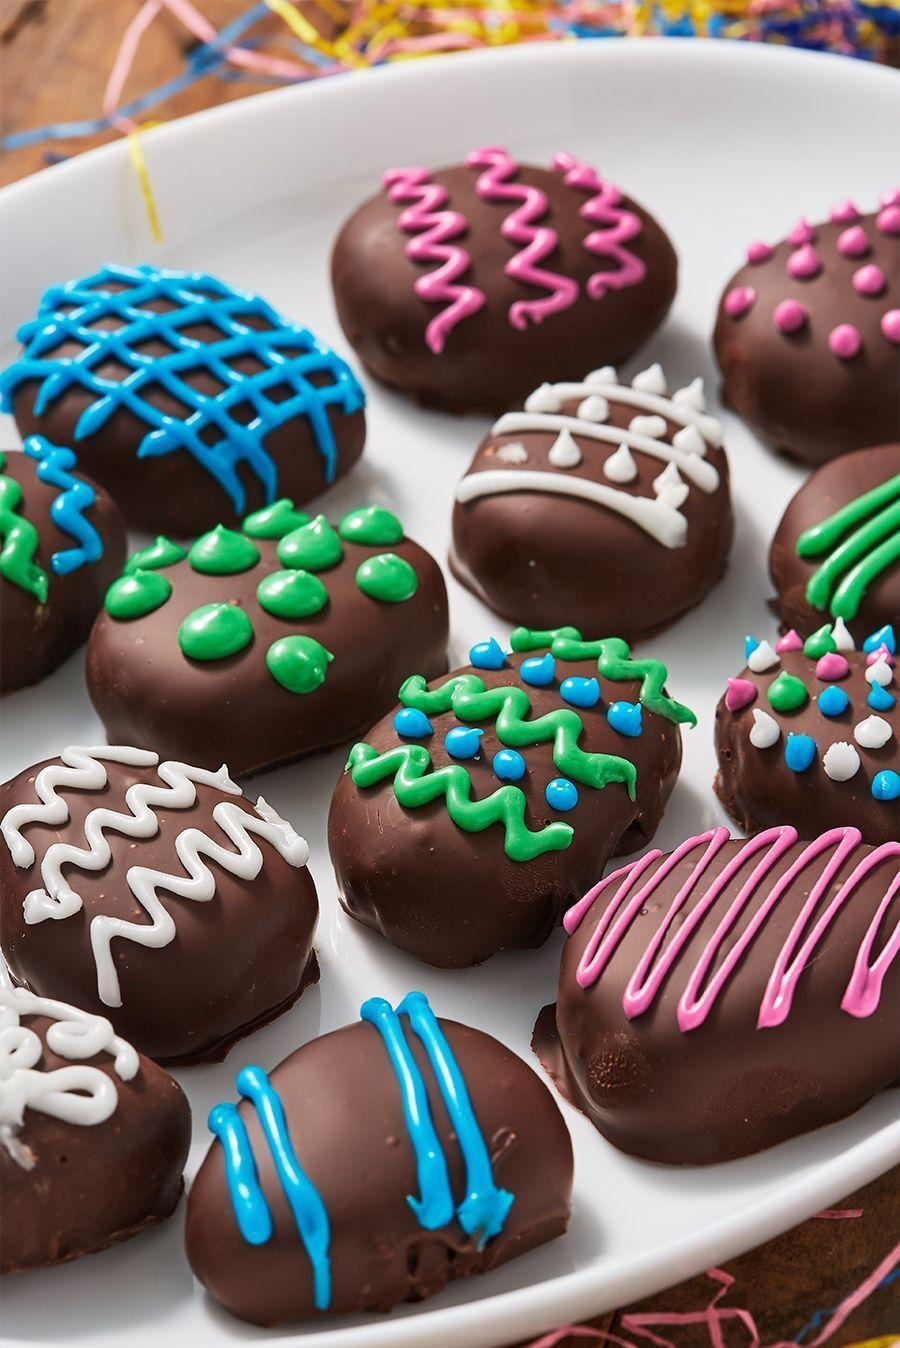 """<p>Win at Easter with these <a href=""""https://www.delish.com/uk/cooking/recipes/a30377008/oreo-truffles-recipe/"""" rel=""""nofollow noopener"""" target=""""_blank"""" data-ylk=""""slk:Oreo truffles"""" class=""""link rapid-noclick-resp"""">Oreo truffles</a>. Decorate them however you want for the cutest eggs at the table! </p><p>Get the <a href=""""https://www.delish.com/uk/cooking/recipes/a32091977/easter-egg-oreo-truffles-recipe/"""" rel=""""nofollow noopener"""" target=""""_blank"""" data-ylk=""""slk:Easter Egg Oreo Truffles"""" class=""""link rapid-noclick-resp"""">Easter Egg Oreo Truffles</a> recipe.</p>"""